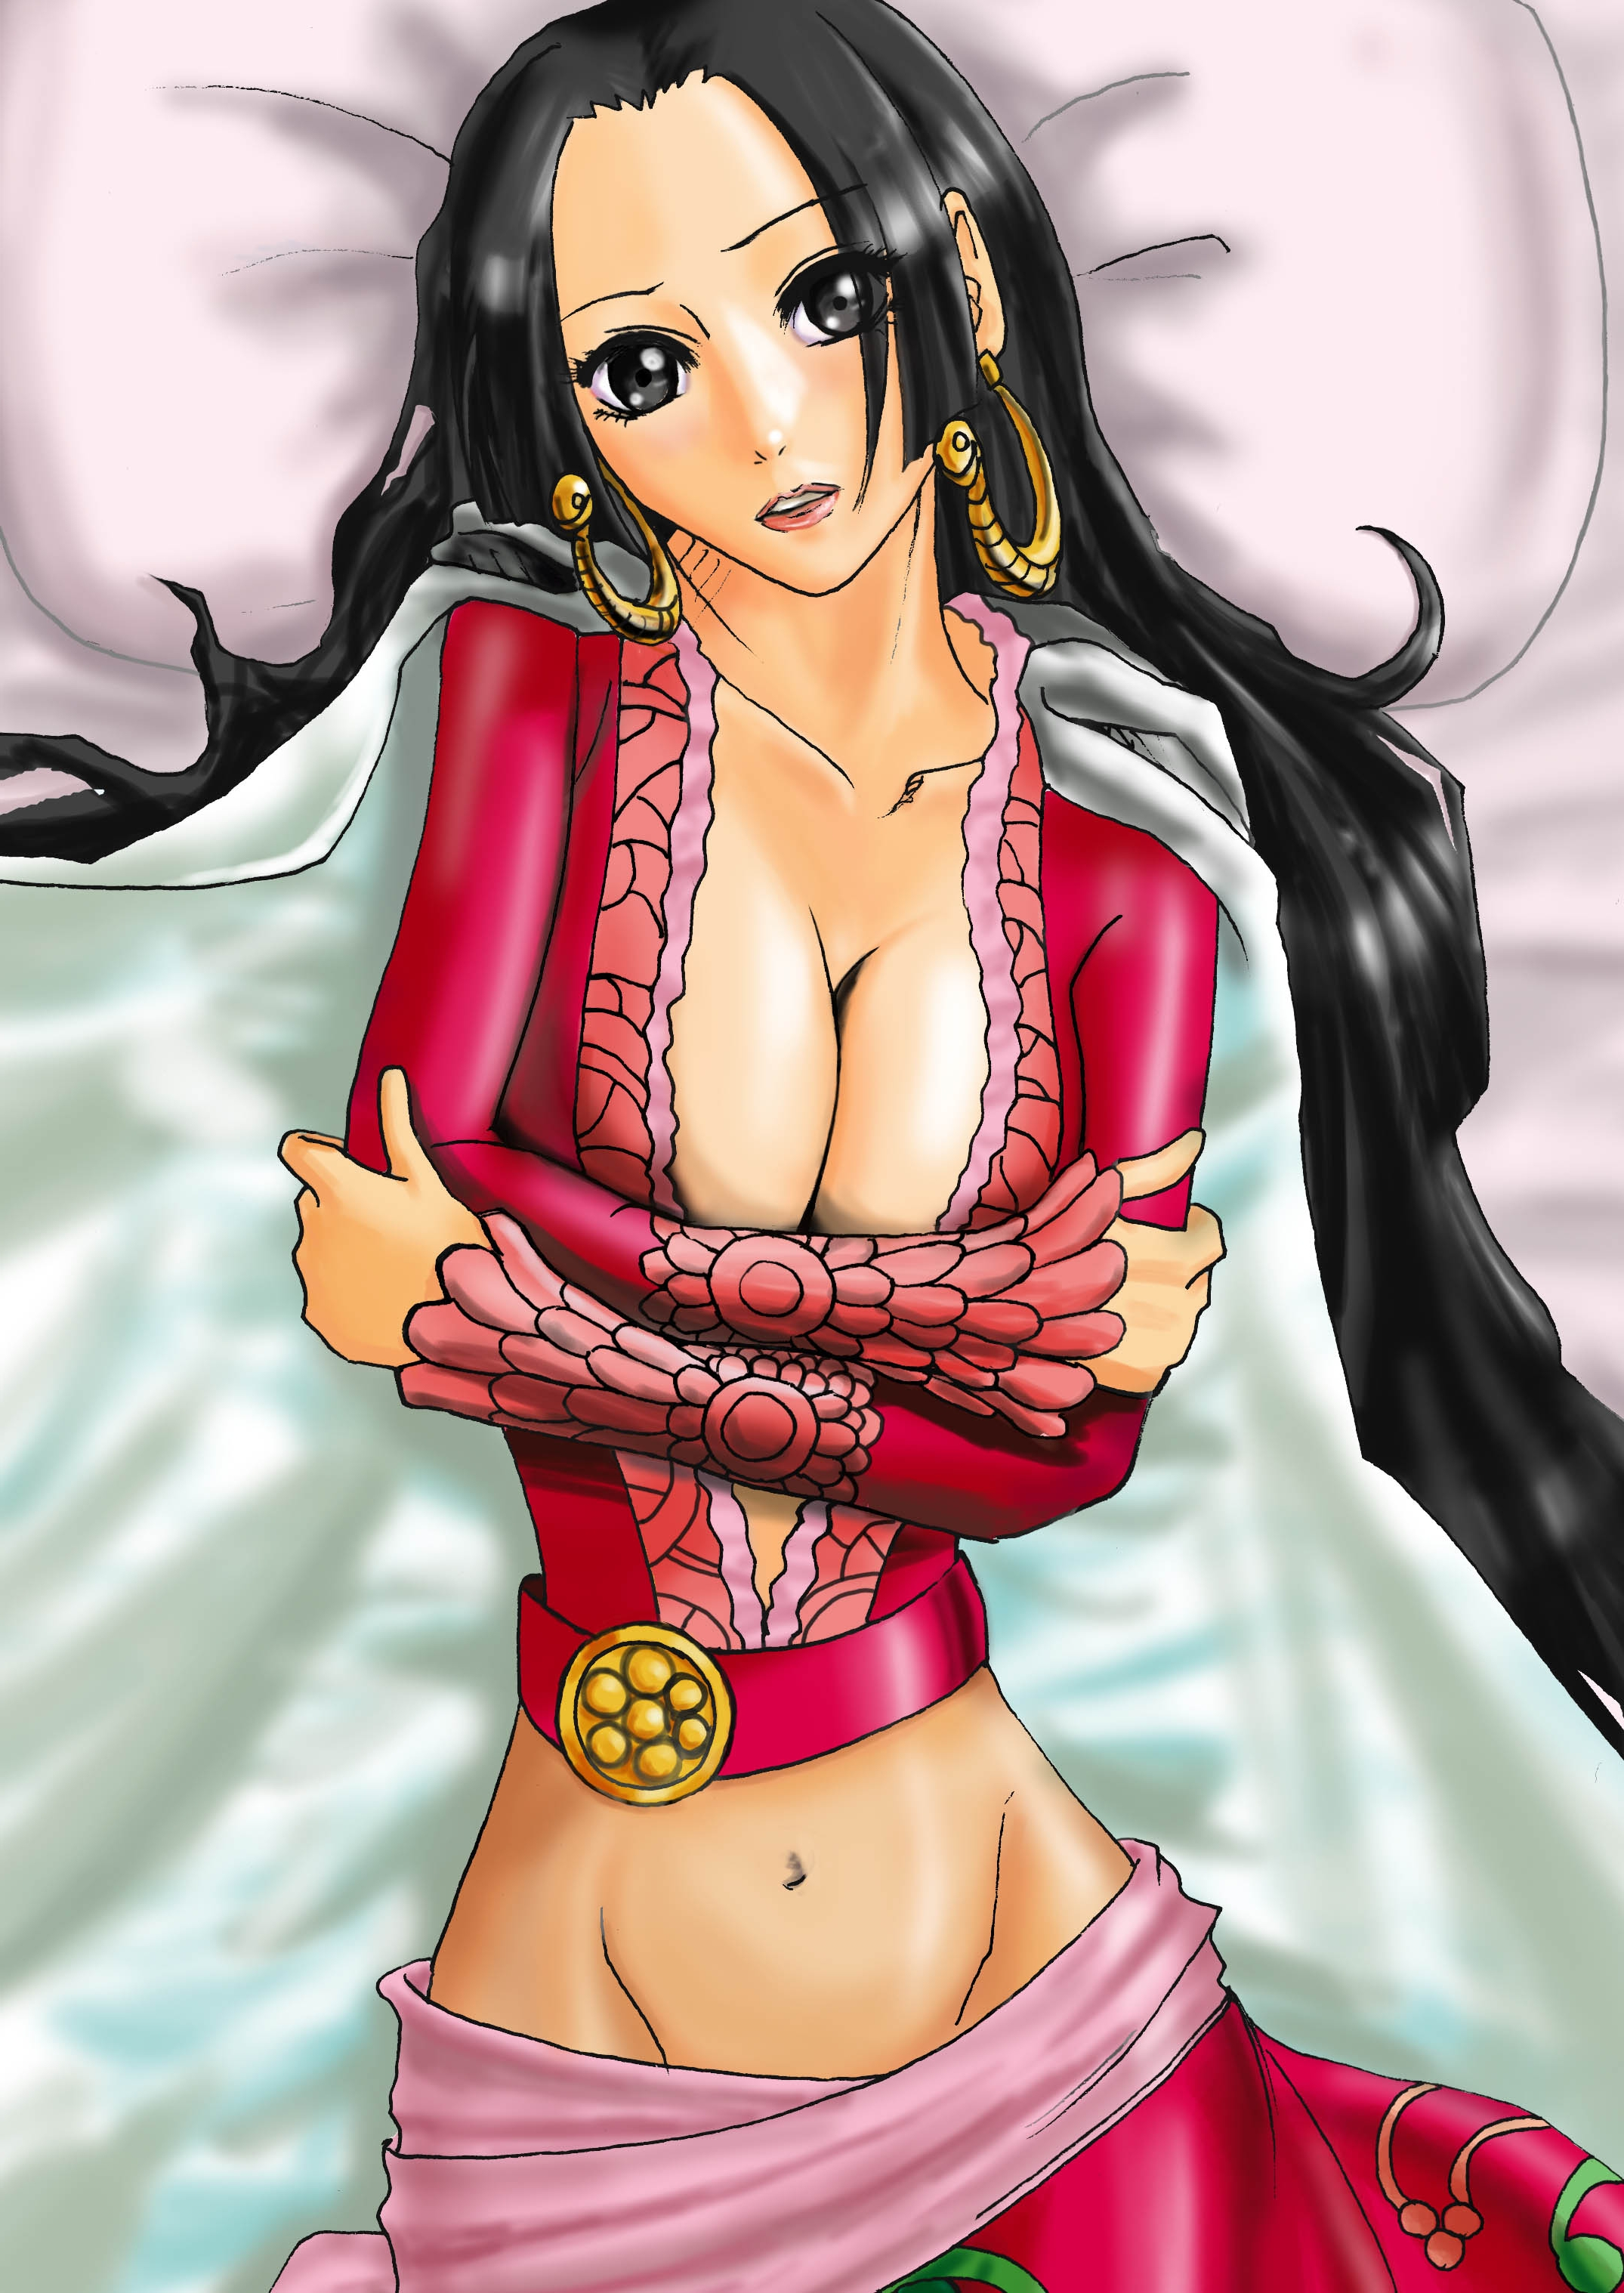 Toon sex pic ##00013061774 boa hancock breasts cape cleavage earrings epaulettes high resolution jewelry long hair midriff navel one piece